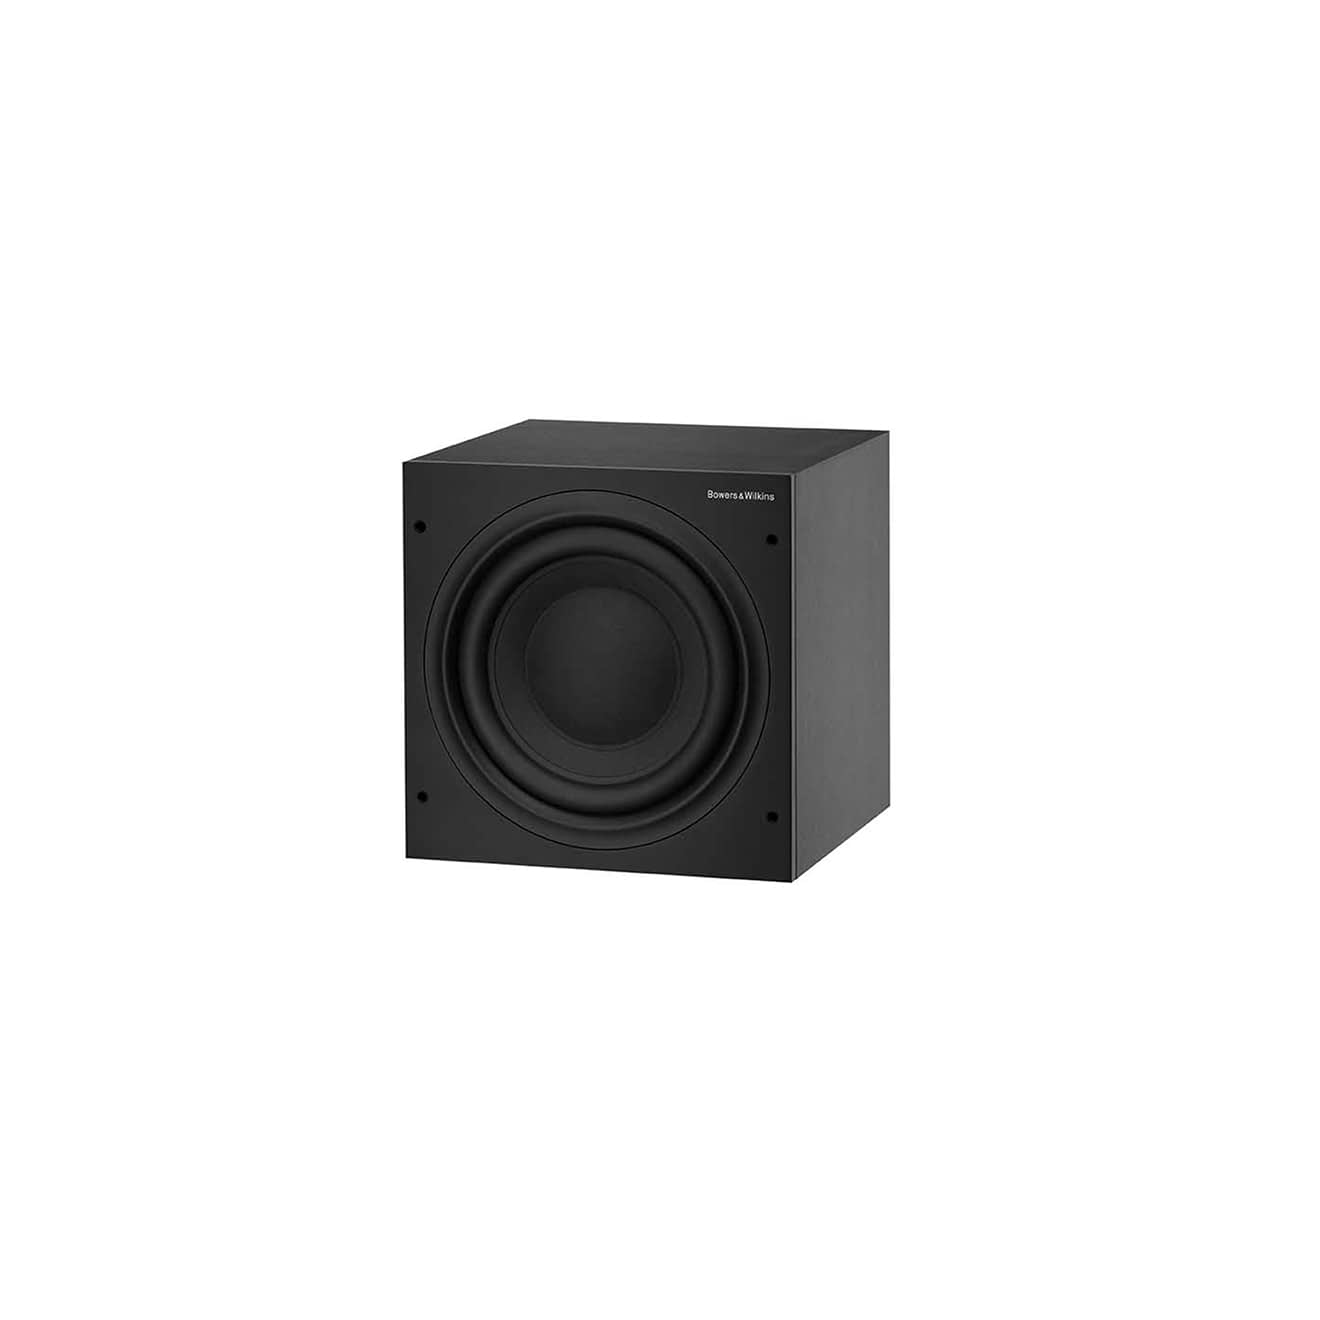 B&W ASW610-Black subwoofer